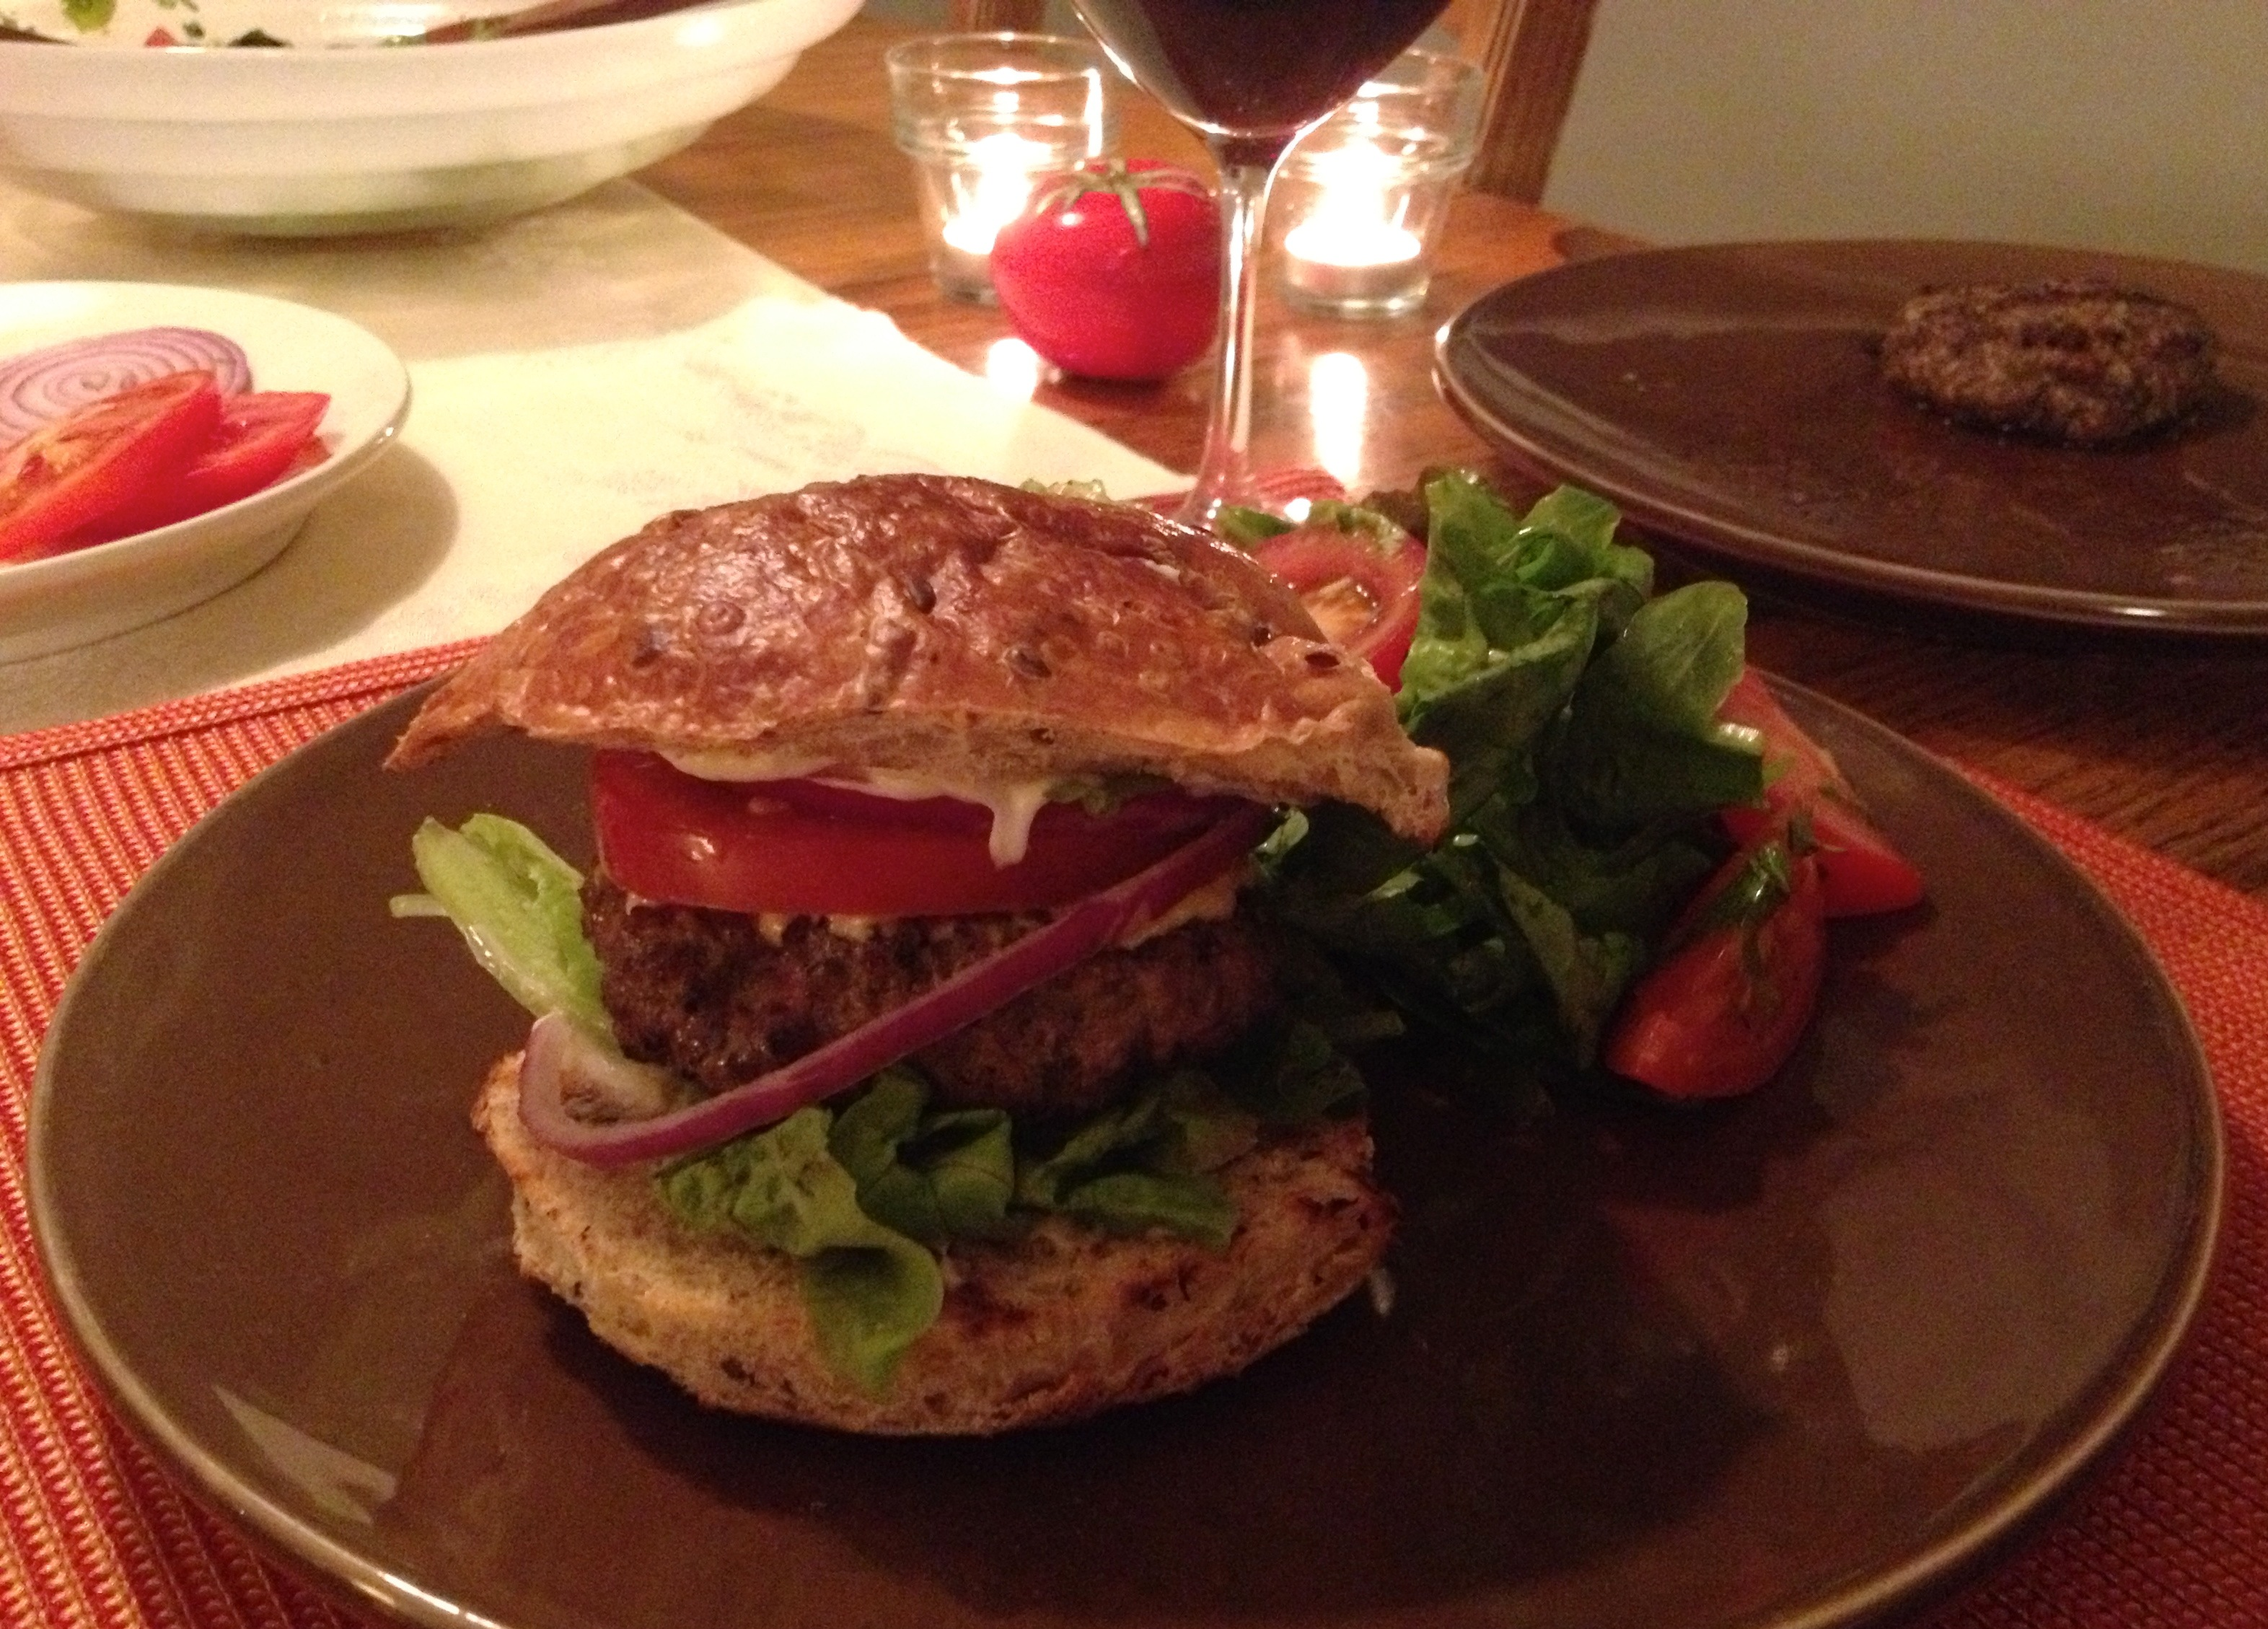 Grilled lamb burger on a bun with lettuce, tomato and red onion on a brown plate.